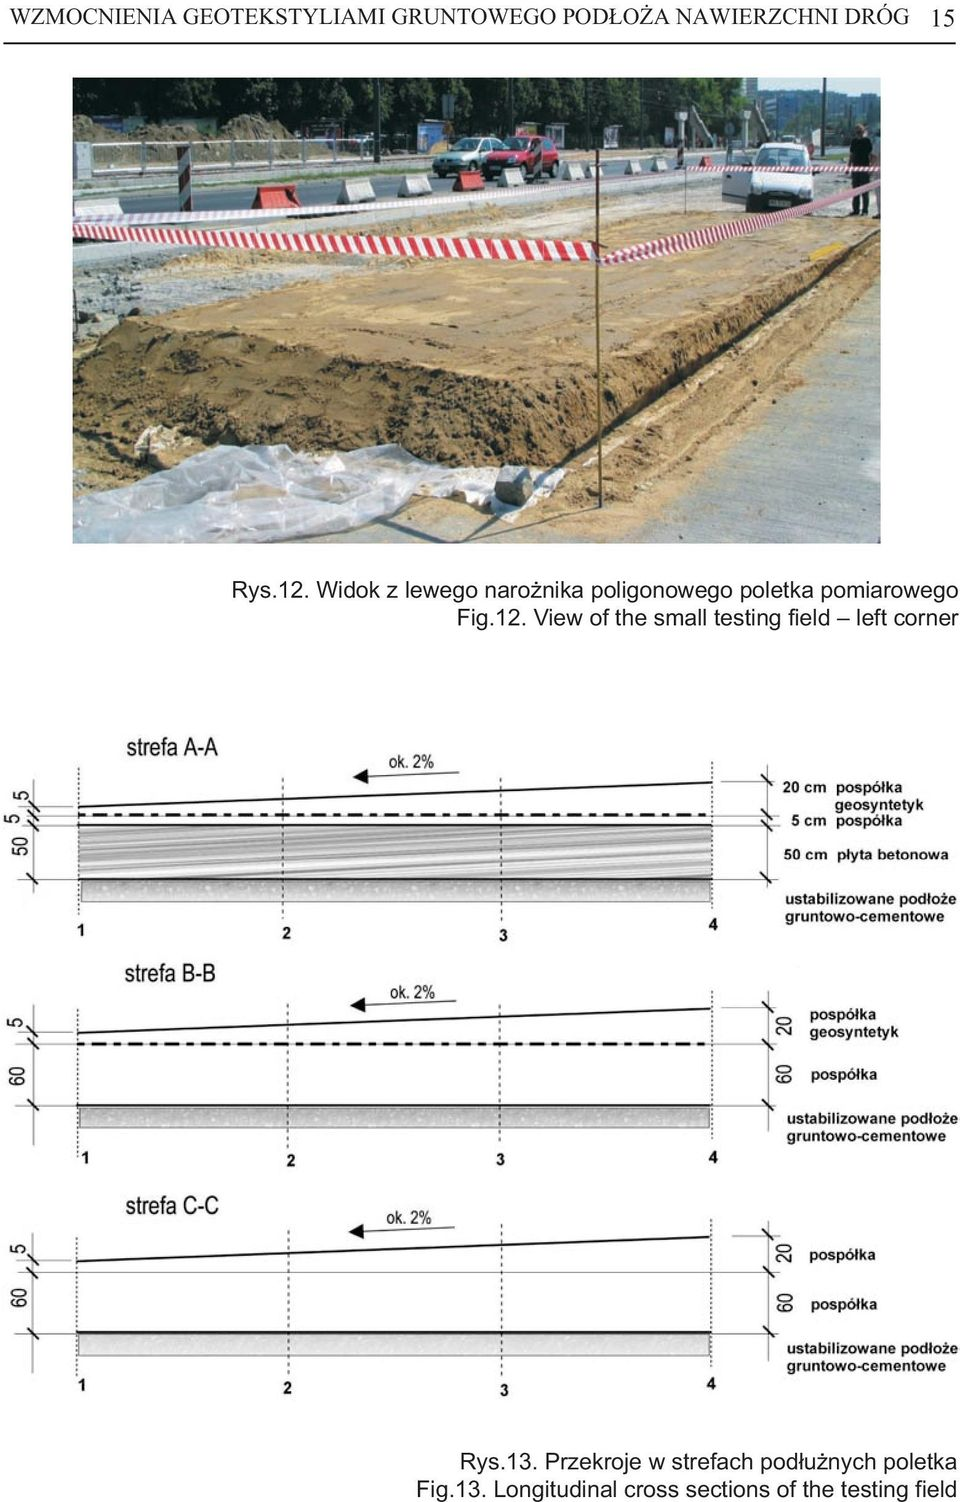 13. Przekroje w strefach pod³u nych poletka Fig.13. Longitudinal cross sections of the testing field